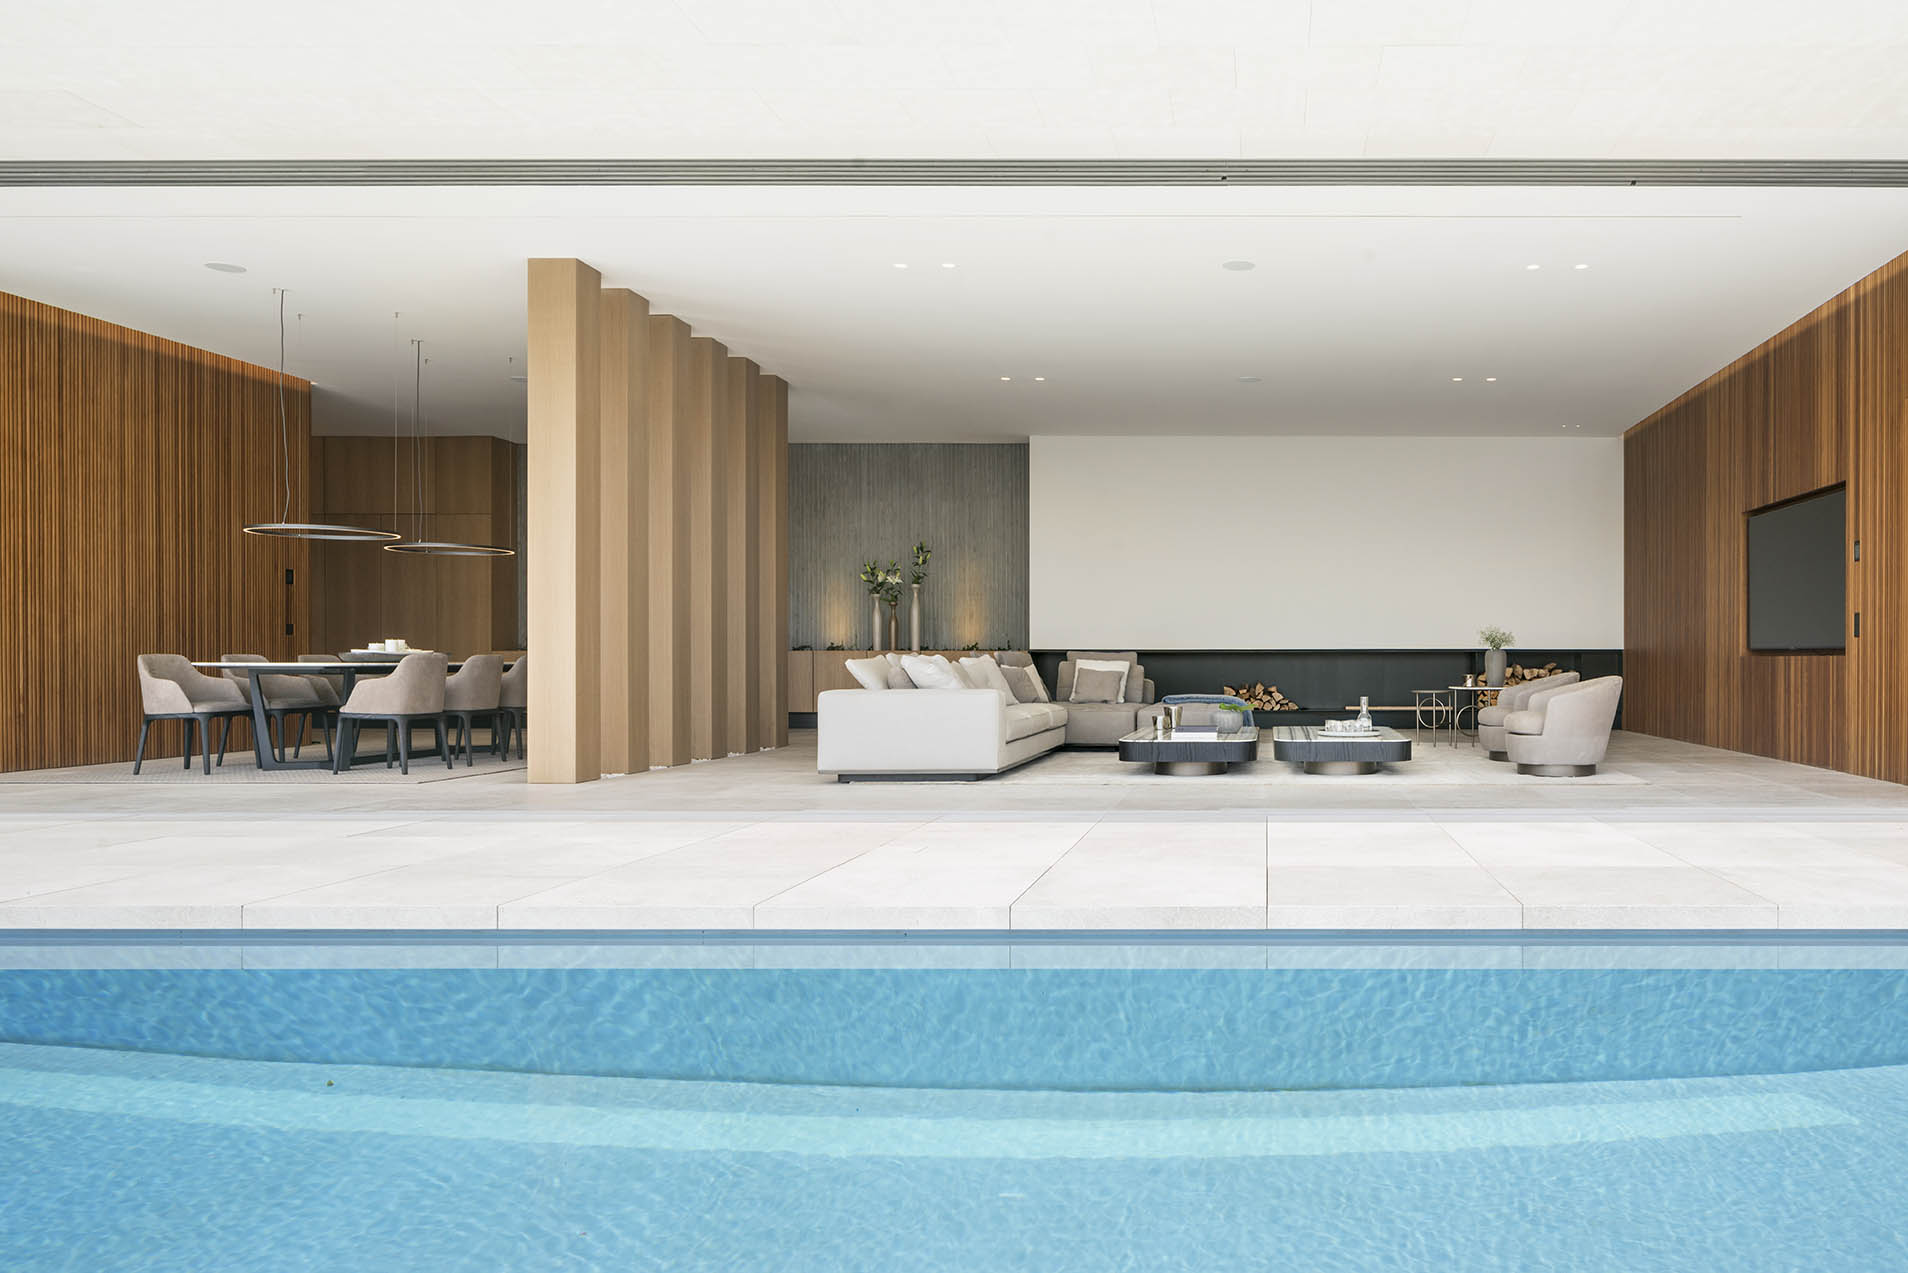 M16 Son Vida | Terraza Balear interior design project in Mallorca 12